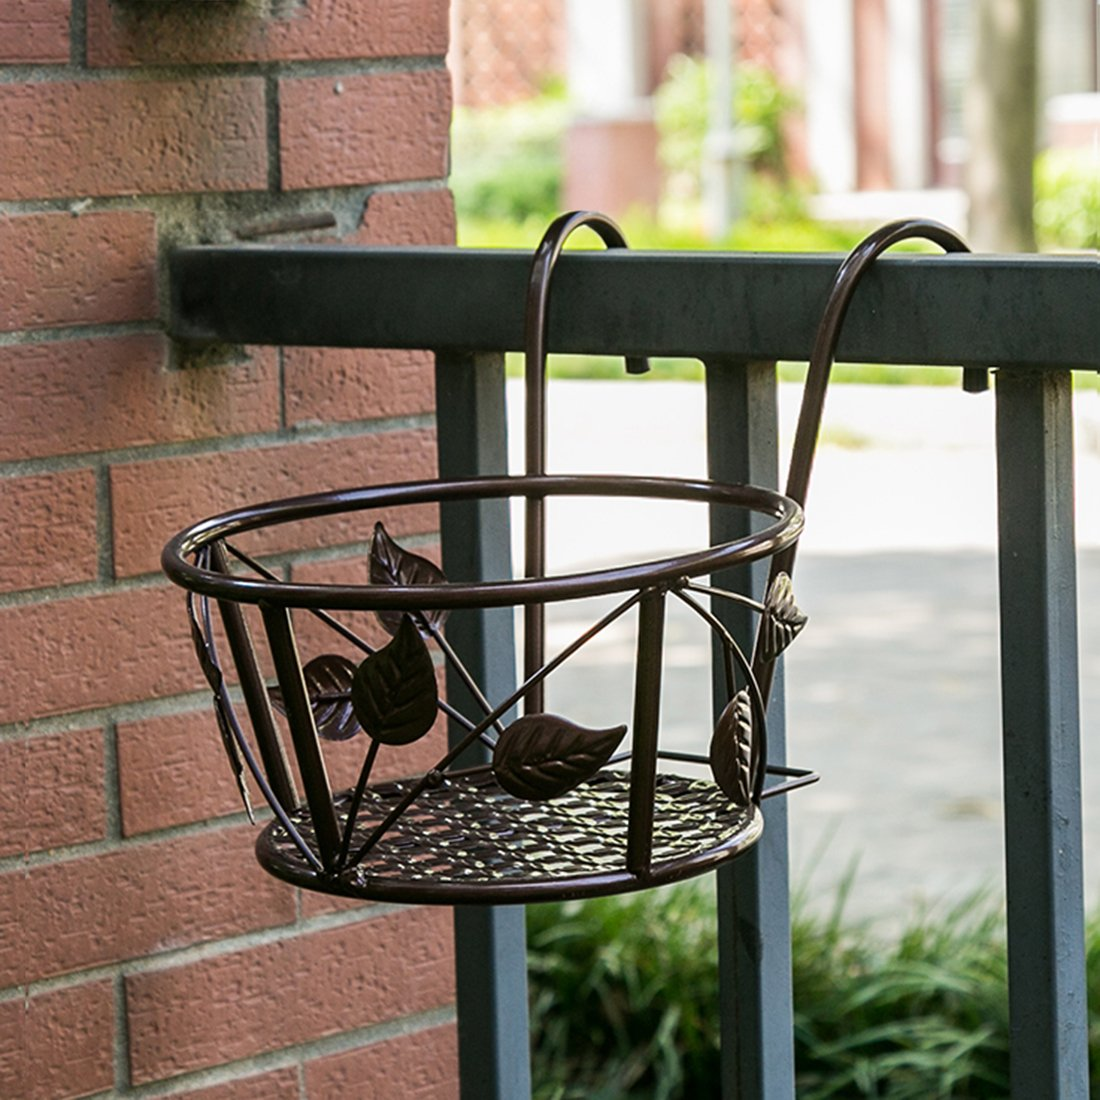 Tosnail 3 Pack Iron Art Hanging Baskets Flower Pot Holder - Great Patio Balcony Porch Fence - Brown by Tosnail (Image #4)